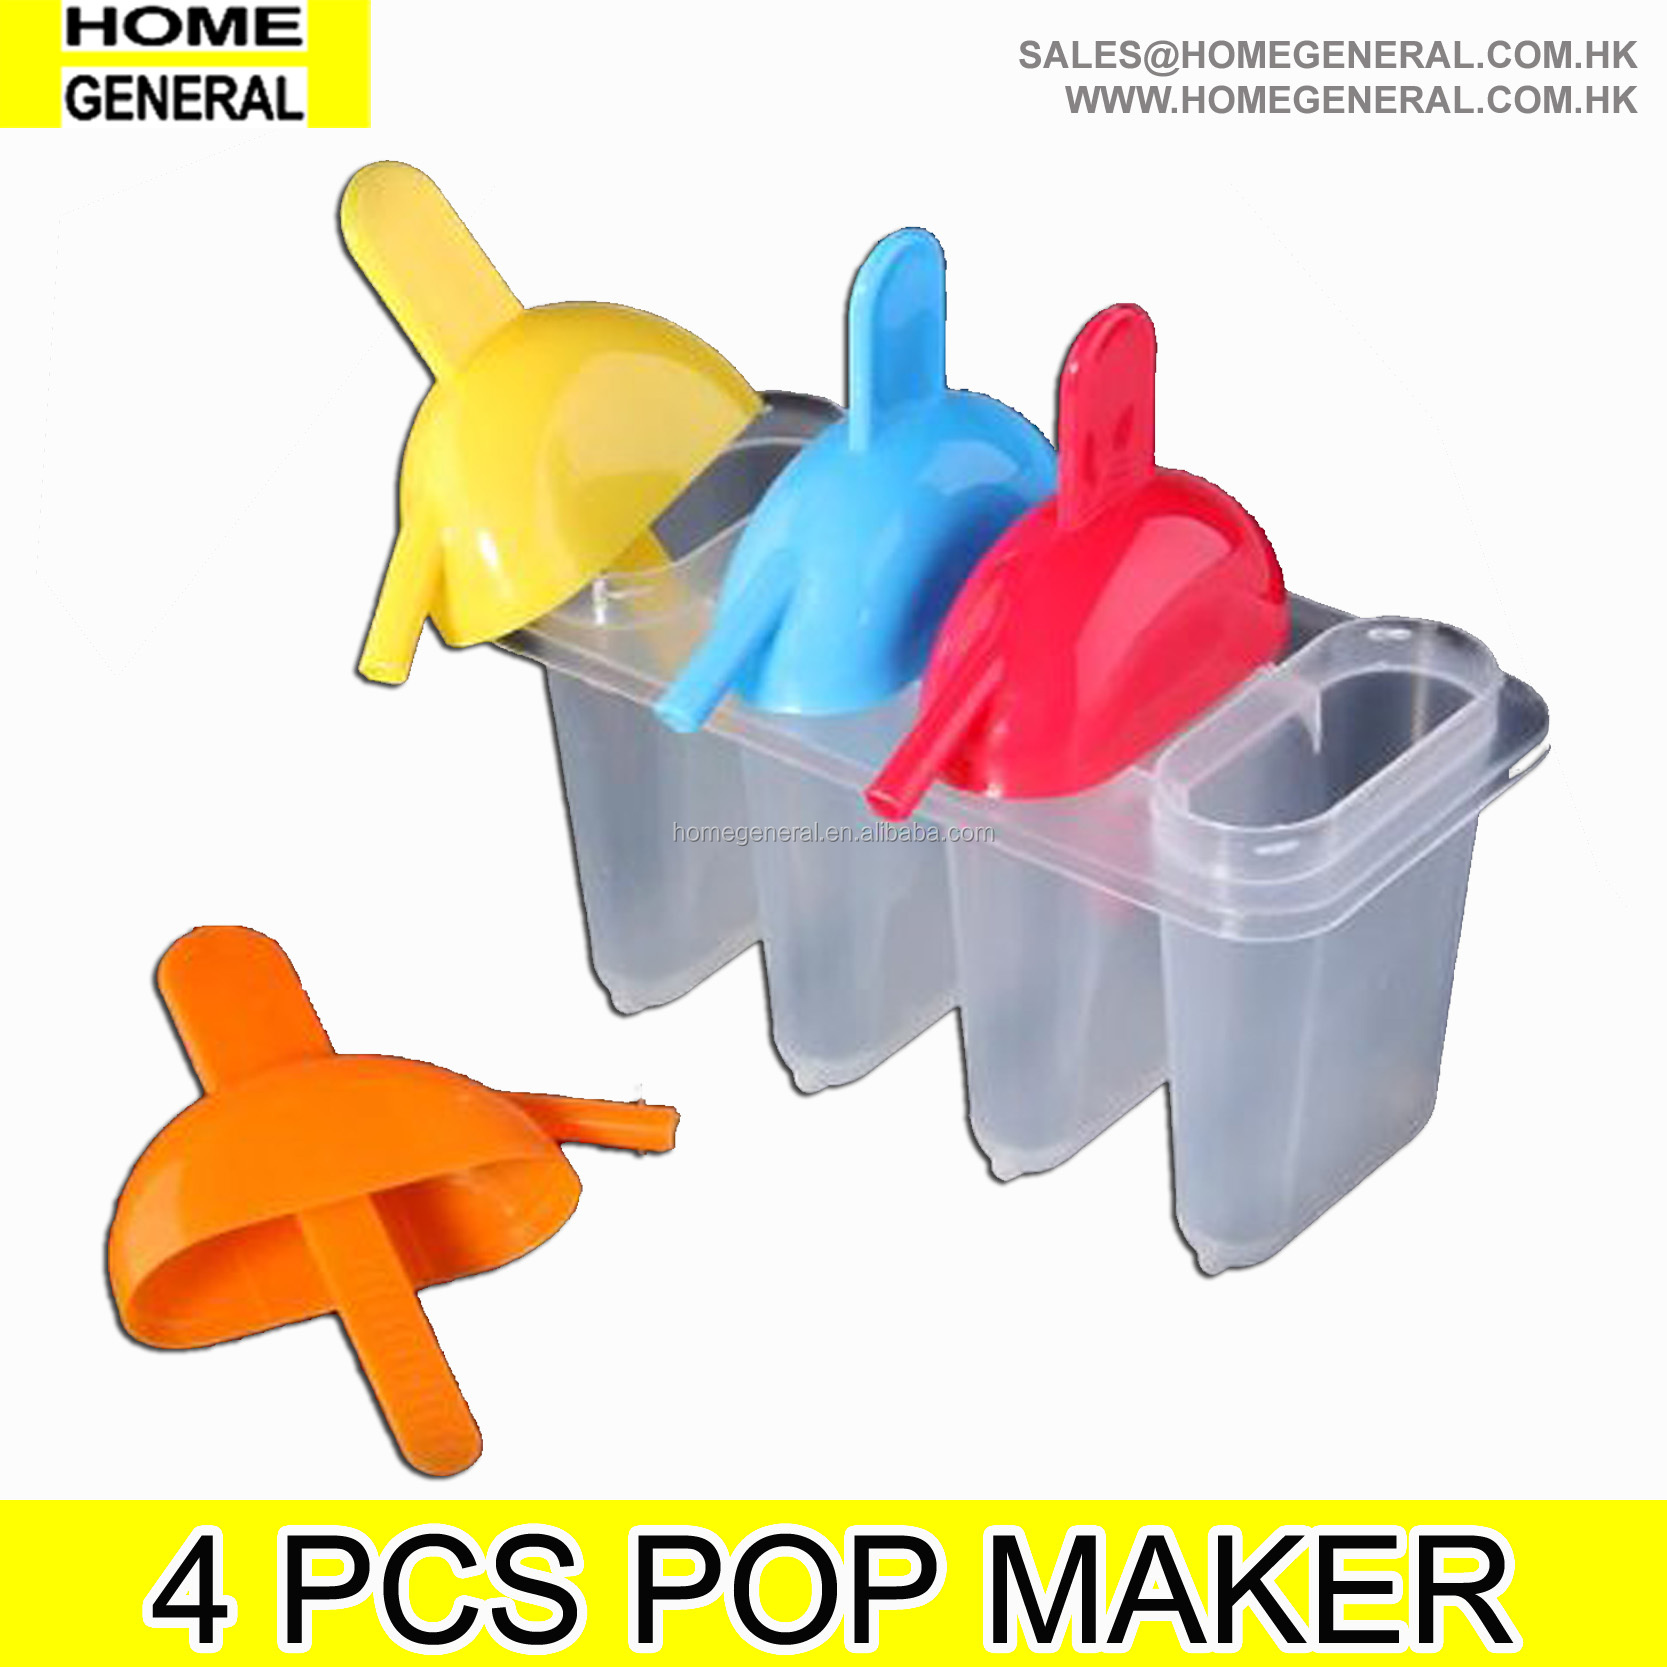 PARTY GENERAL CUSTOM PLASTIC POPSICLE ICE LOLLY POP MAKER MOLDS